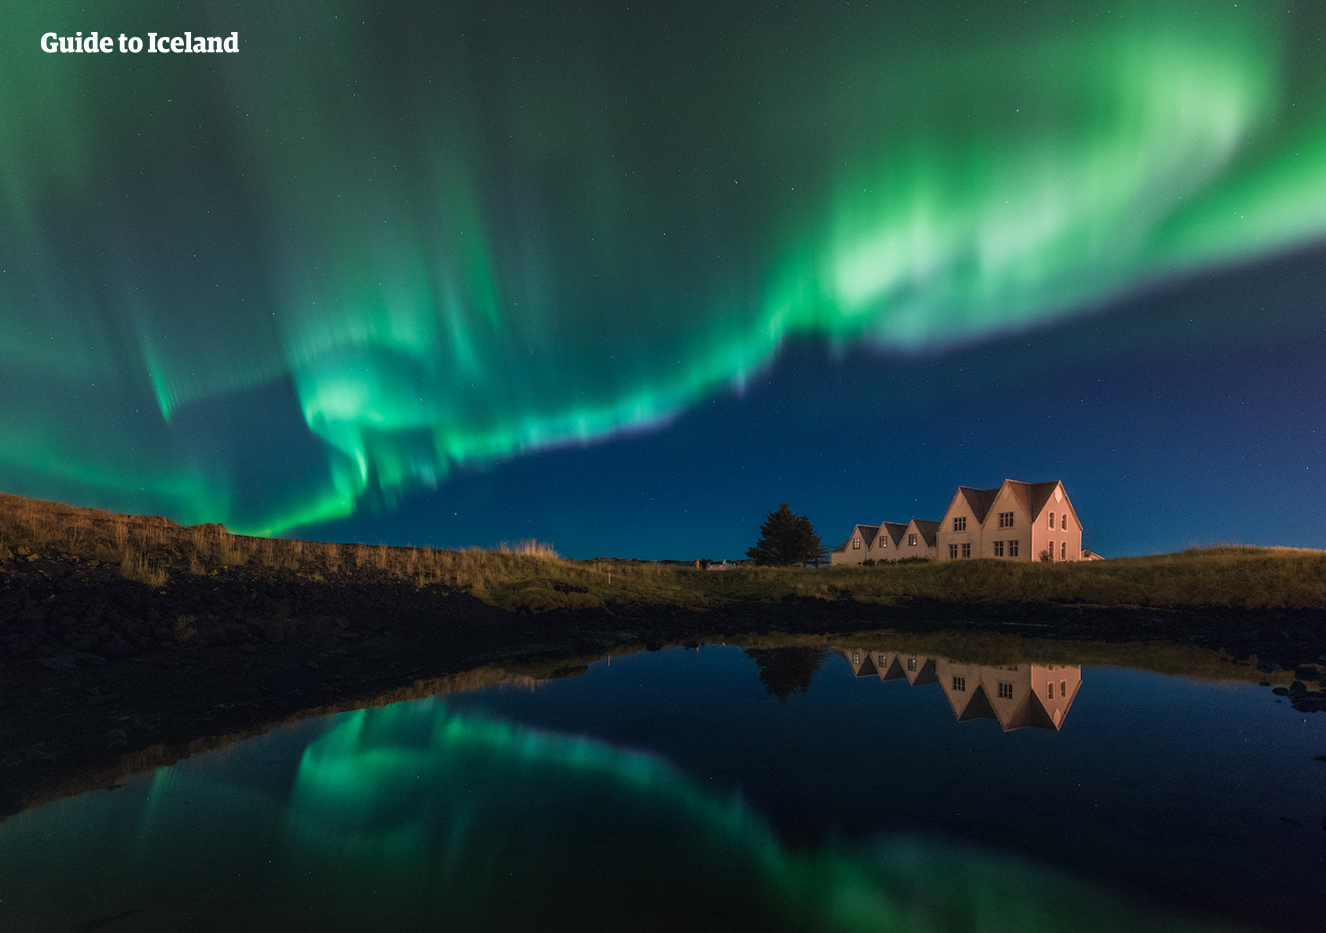 The beautiful Northern Lights dancing over a lonely house on the Reykjanes Peninsula.